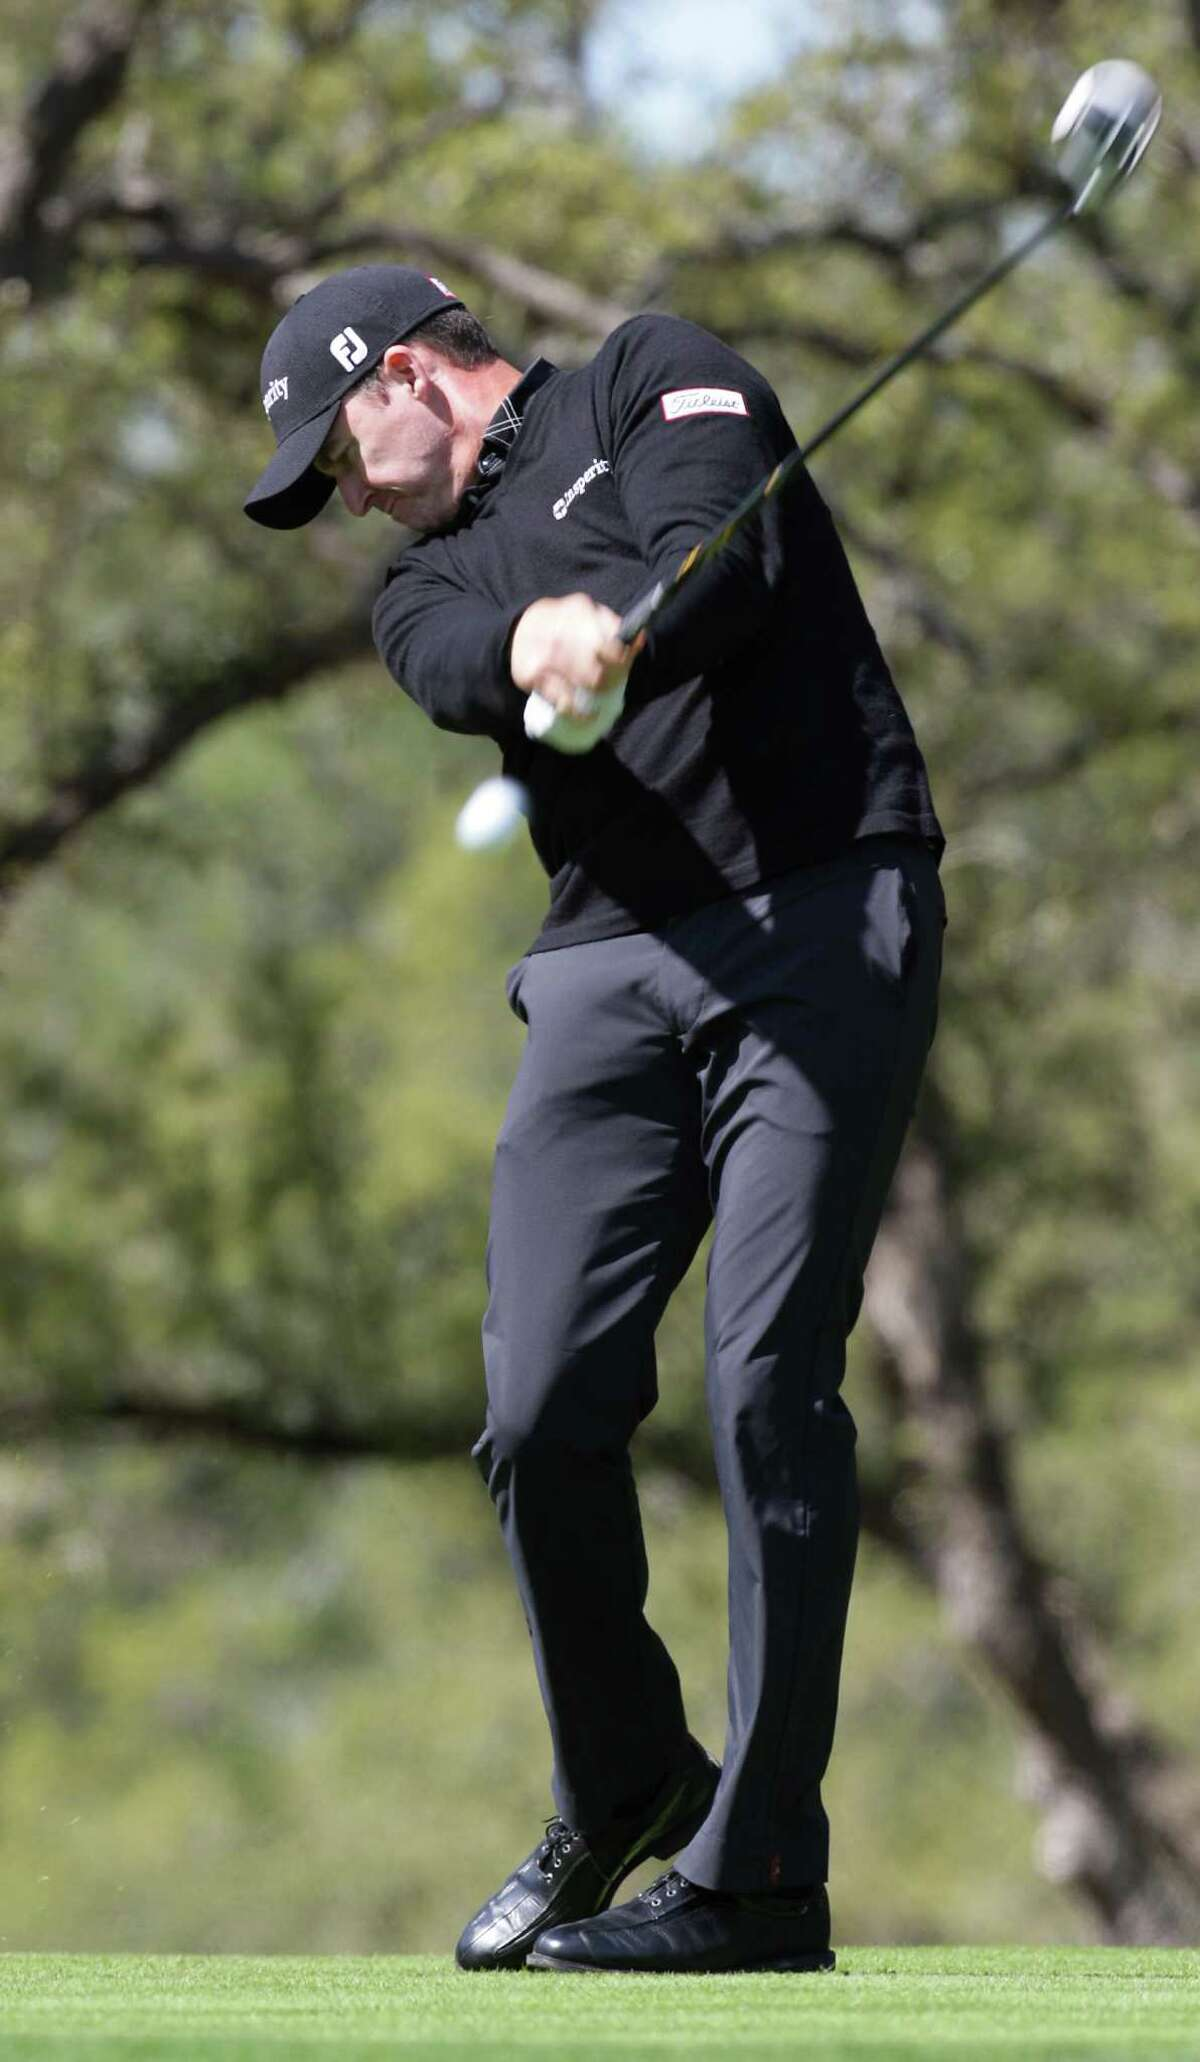 Jimmy Walker of Boerne, tees off on the 6th during the first round of the Valero Texas Open Thursday April 4, 2013. He shot a 71 on the first round.